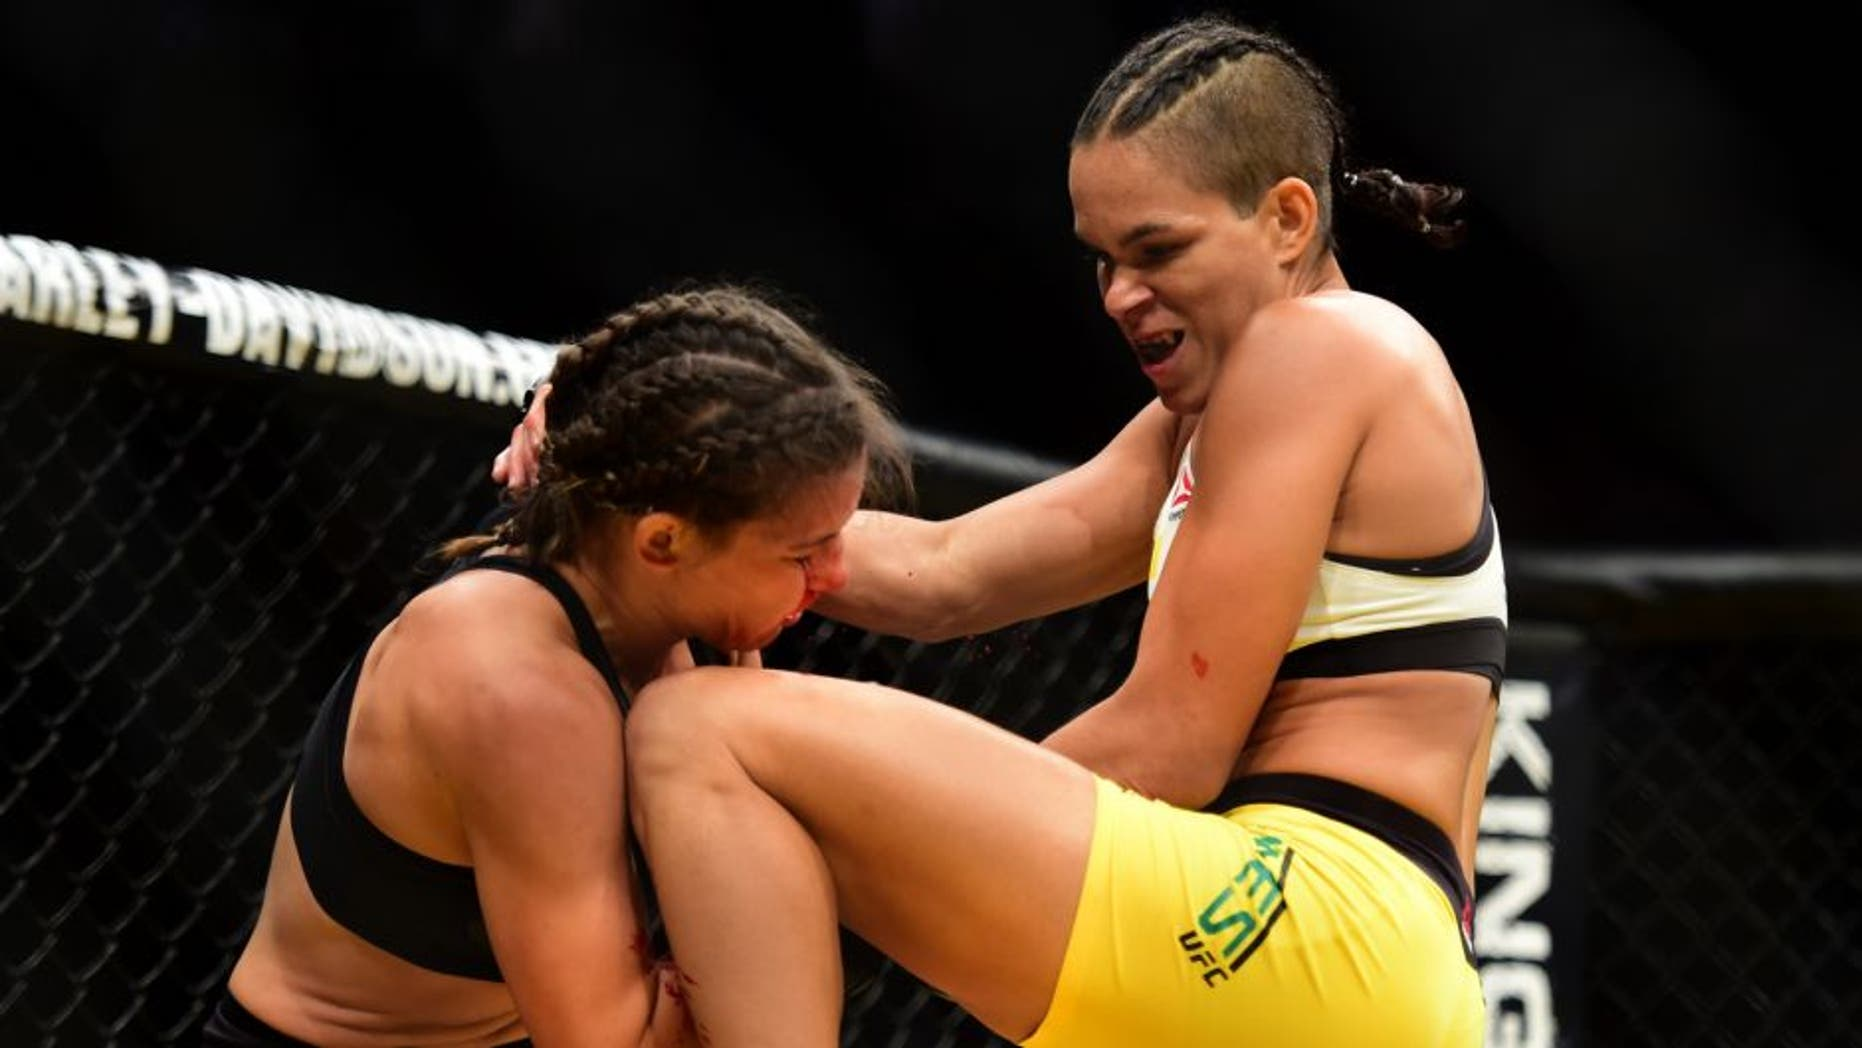 LAS VEGAS, NV - JULY 09: (R-L) Amanda Nunes of Brazil knees Miesha Tate in their UFC women's bantamweight championship bout during the UFC 200 event on July 9, 2016 at T-Mobile Arena in Las Vegas, Nevada. (Photo by Harry How/Zuffa LLC/Zuffa LLC via Getty Images)